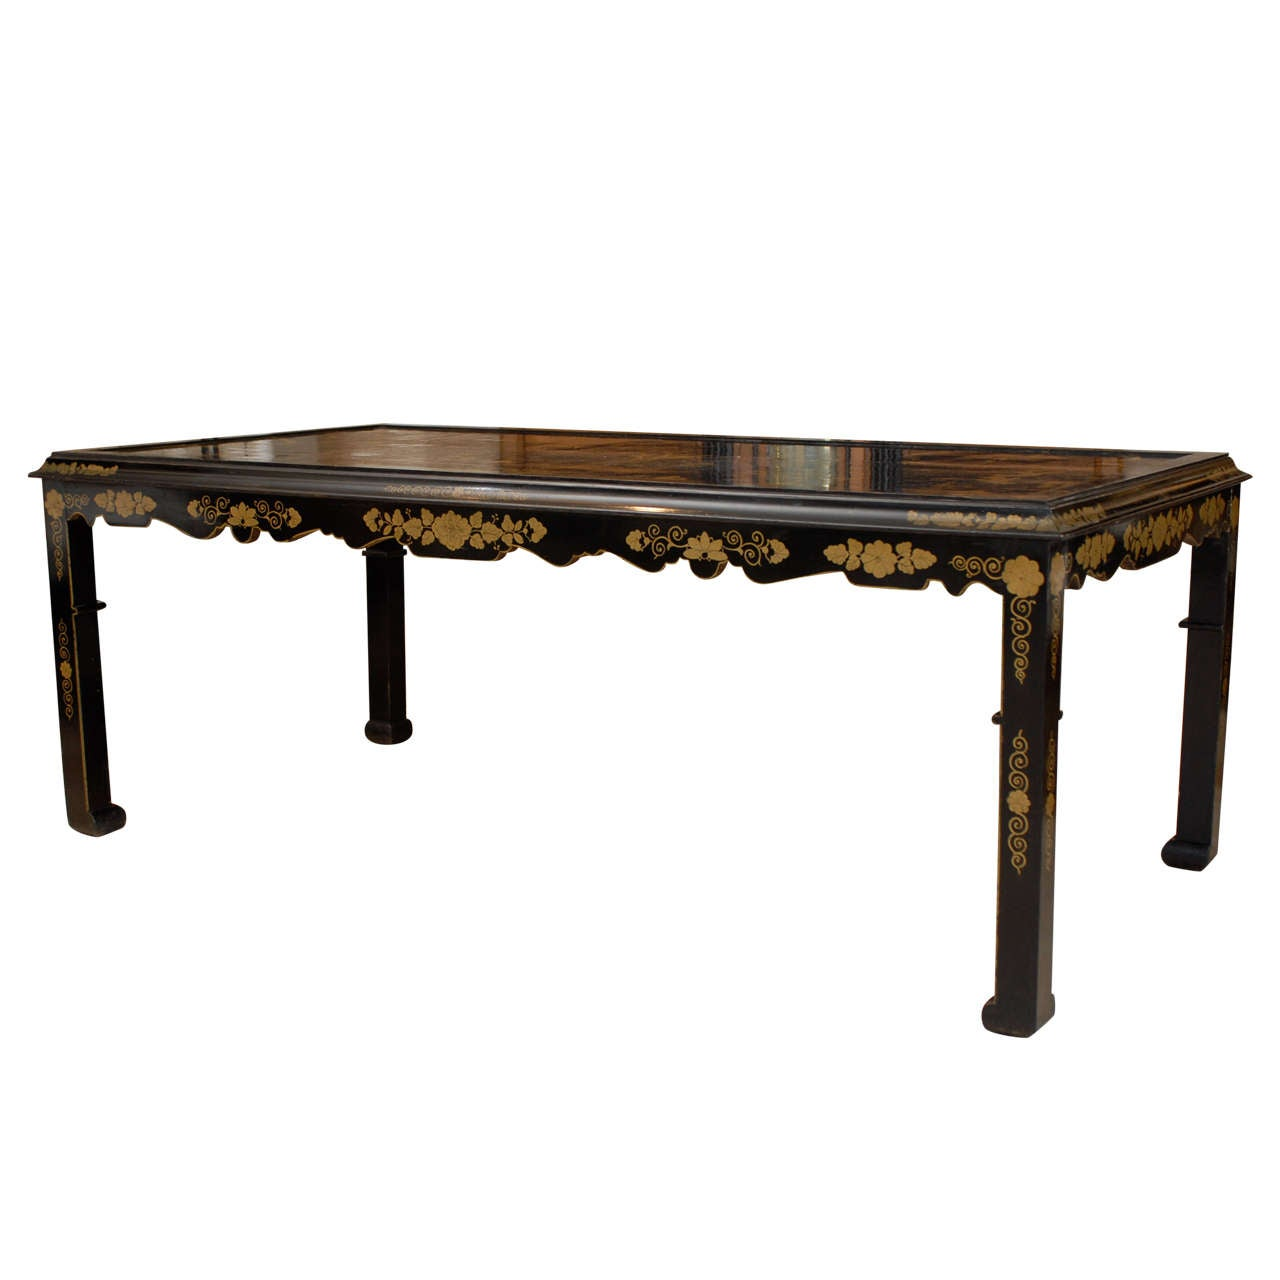 19th century french chinoiserie dining table at 1stdibs